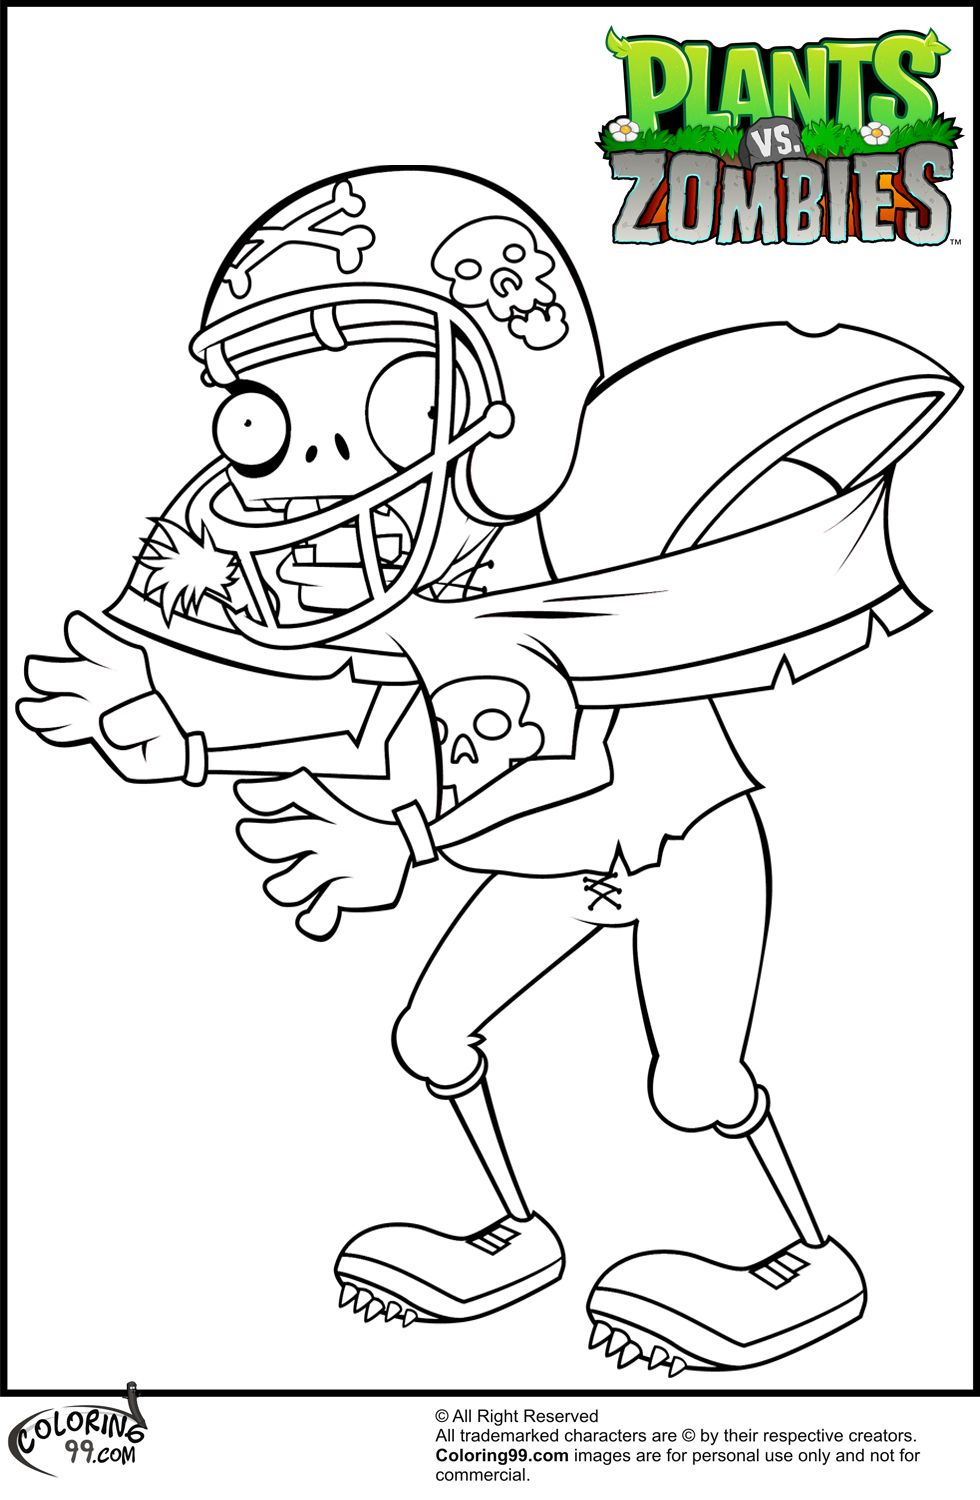 Plants v zombies coloring pages - Plants Vs Zombies Football Zombie Coloring Pages Jpg